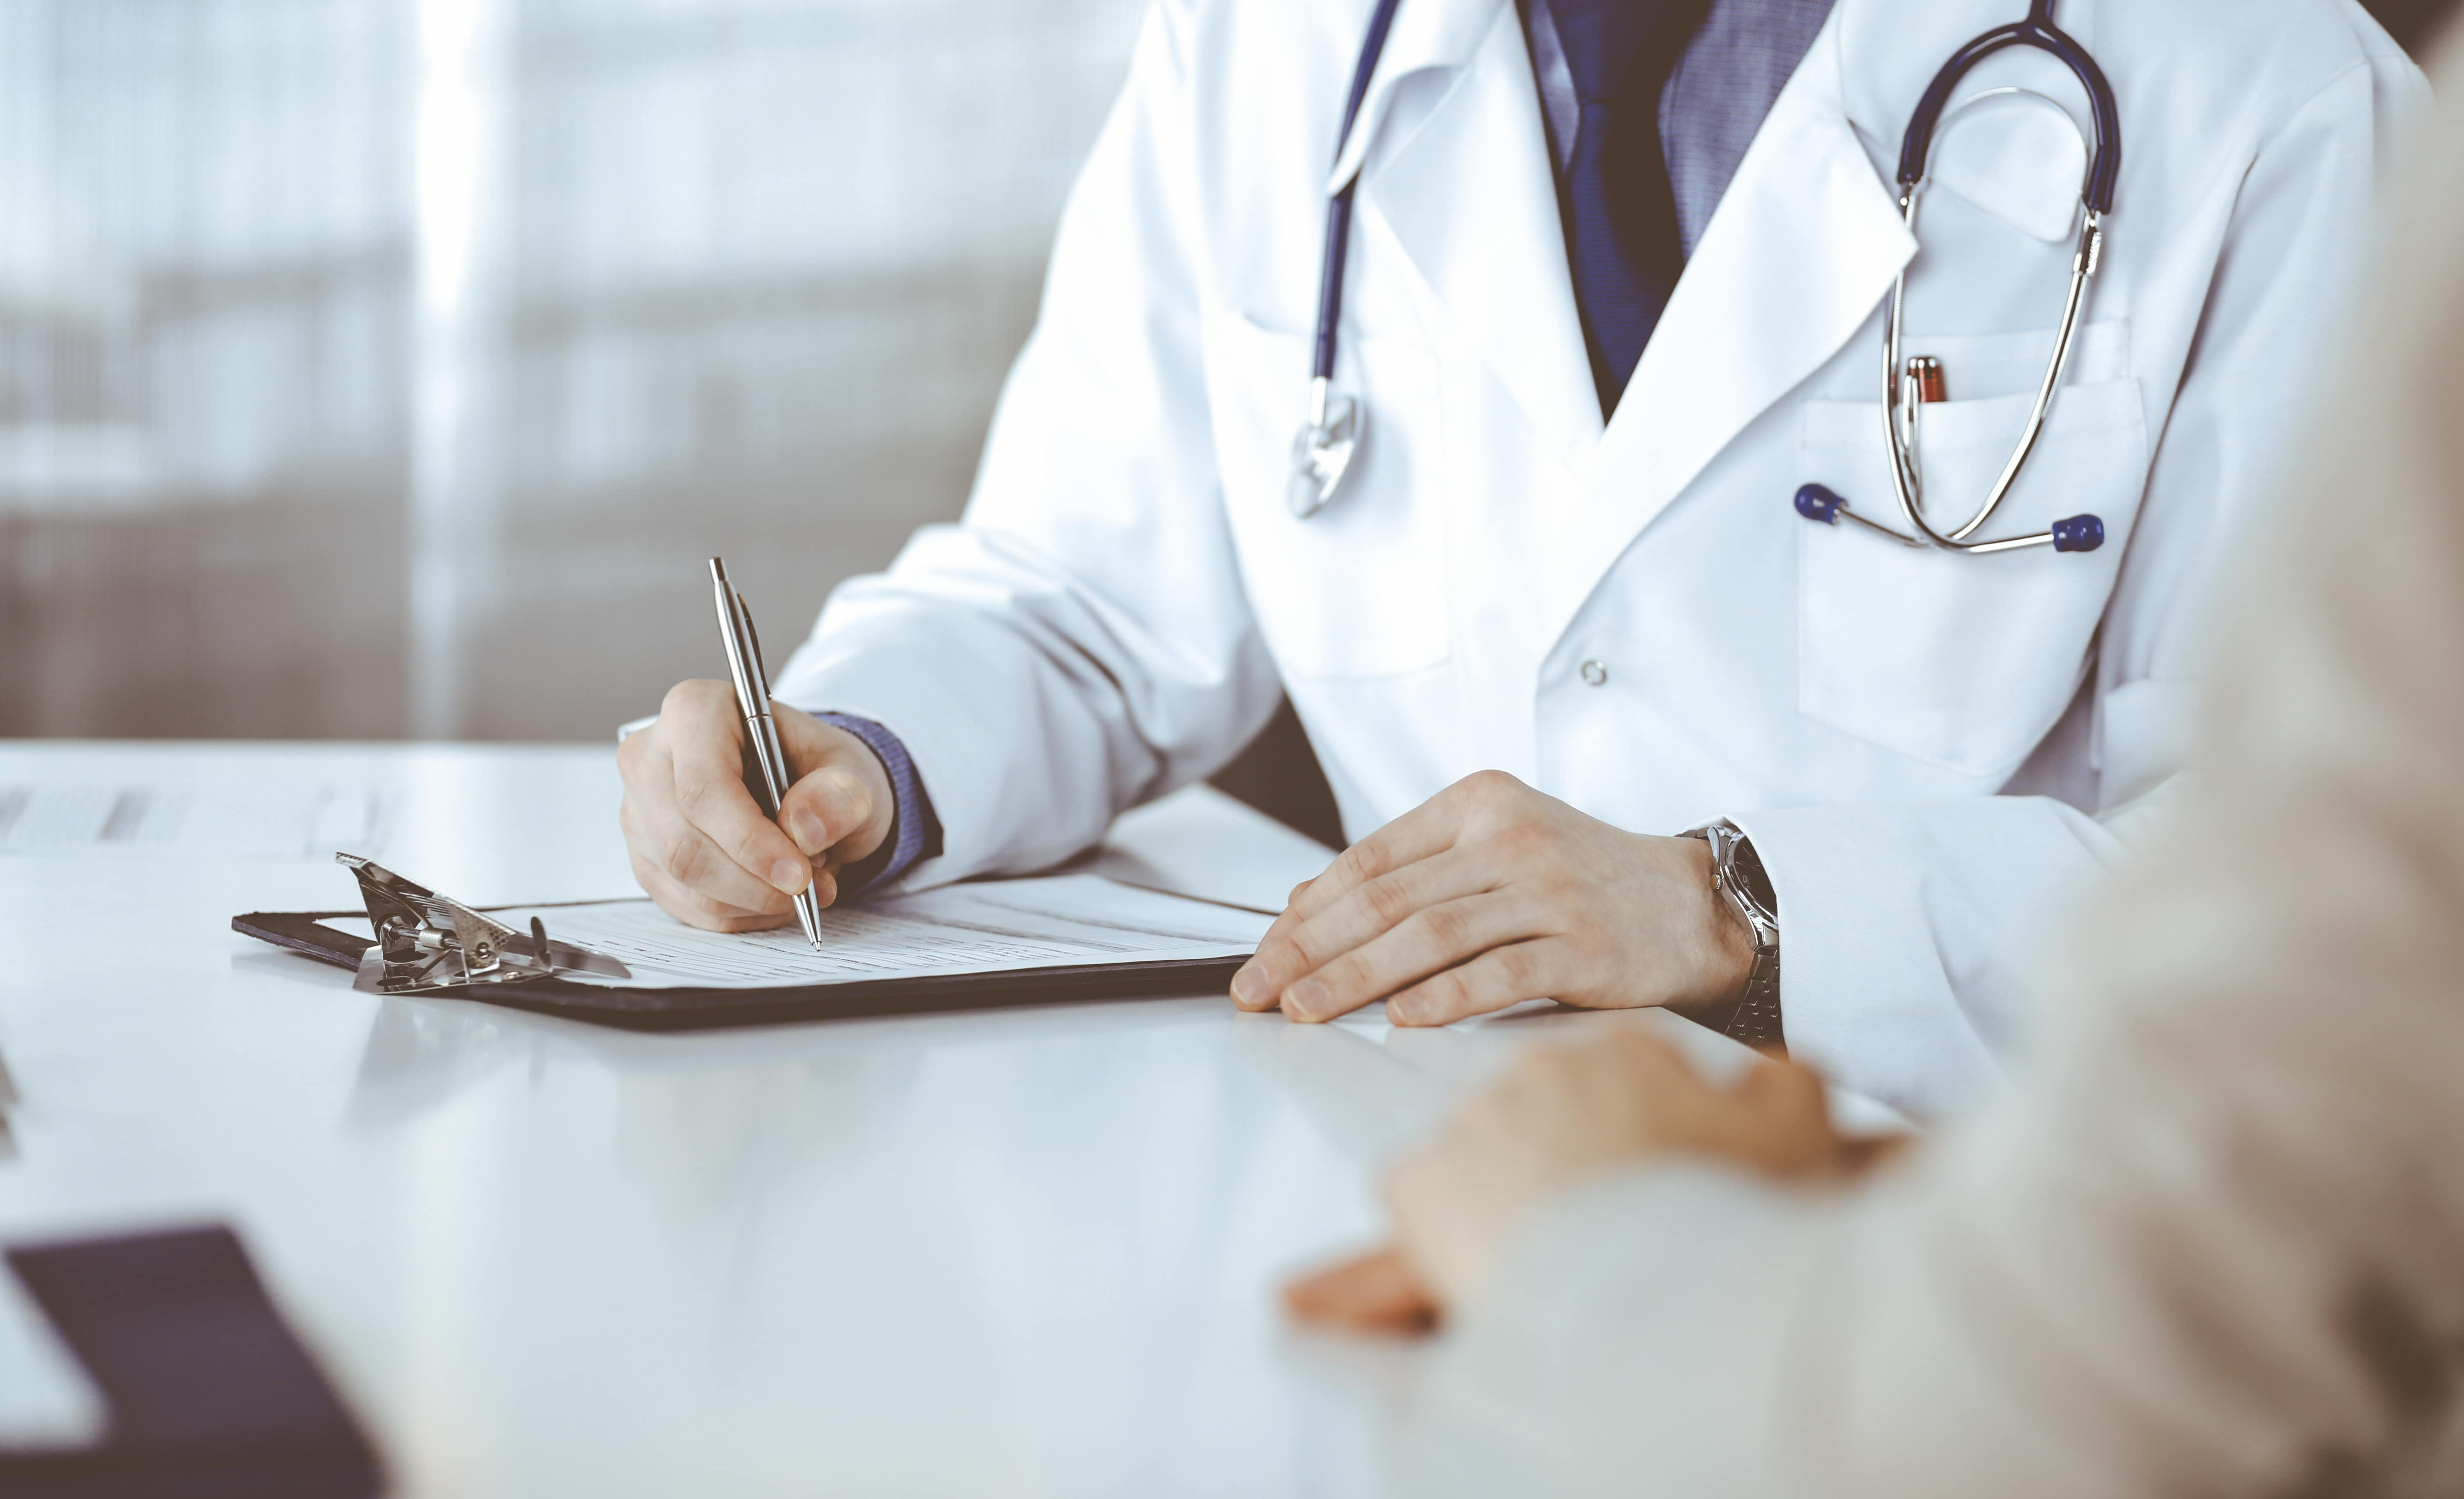 Doctor in white coat signing medical malpractice insurance paperwork